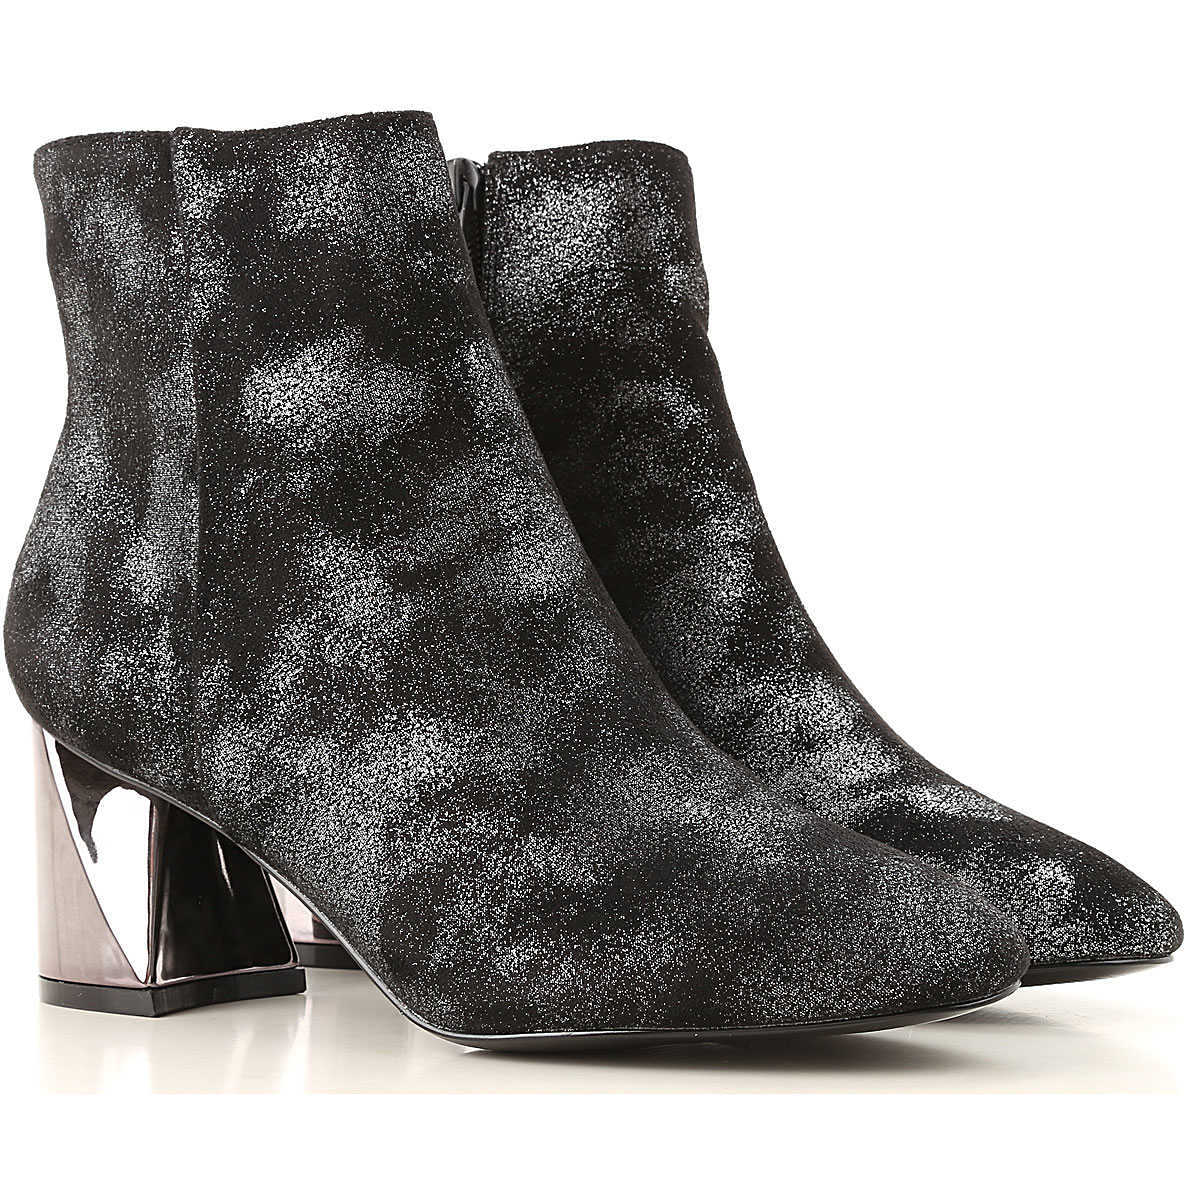 Kendall Kylie Boots for Women 3.5 4 4.5 5.5 6 Booties UK - GOOFASH